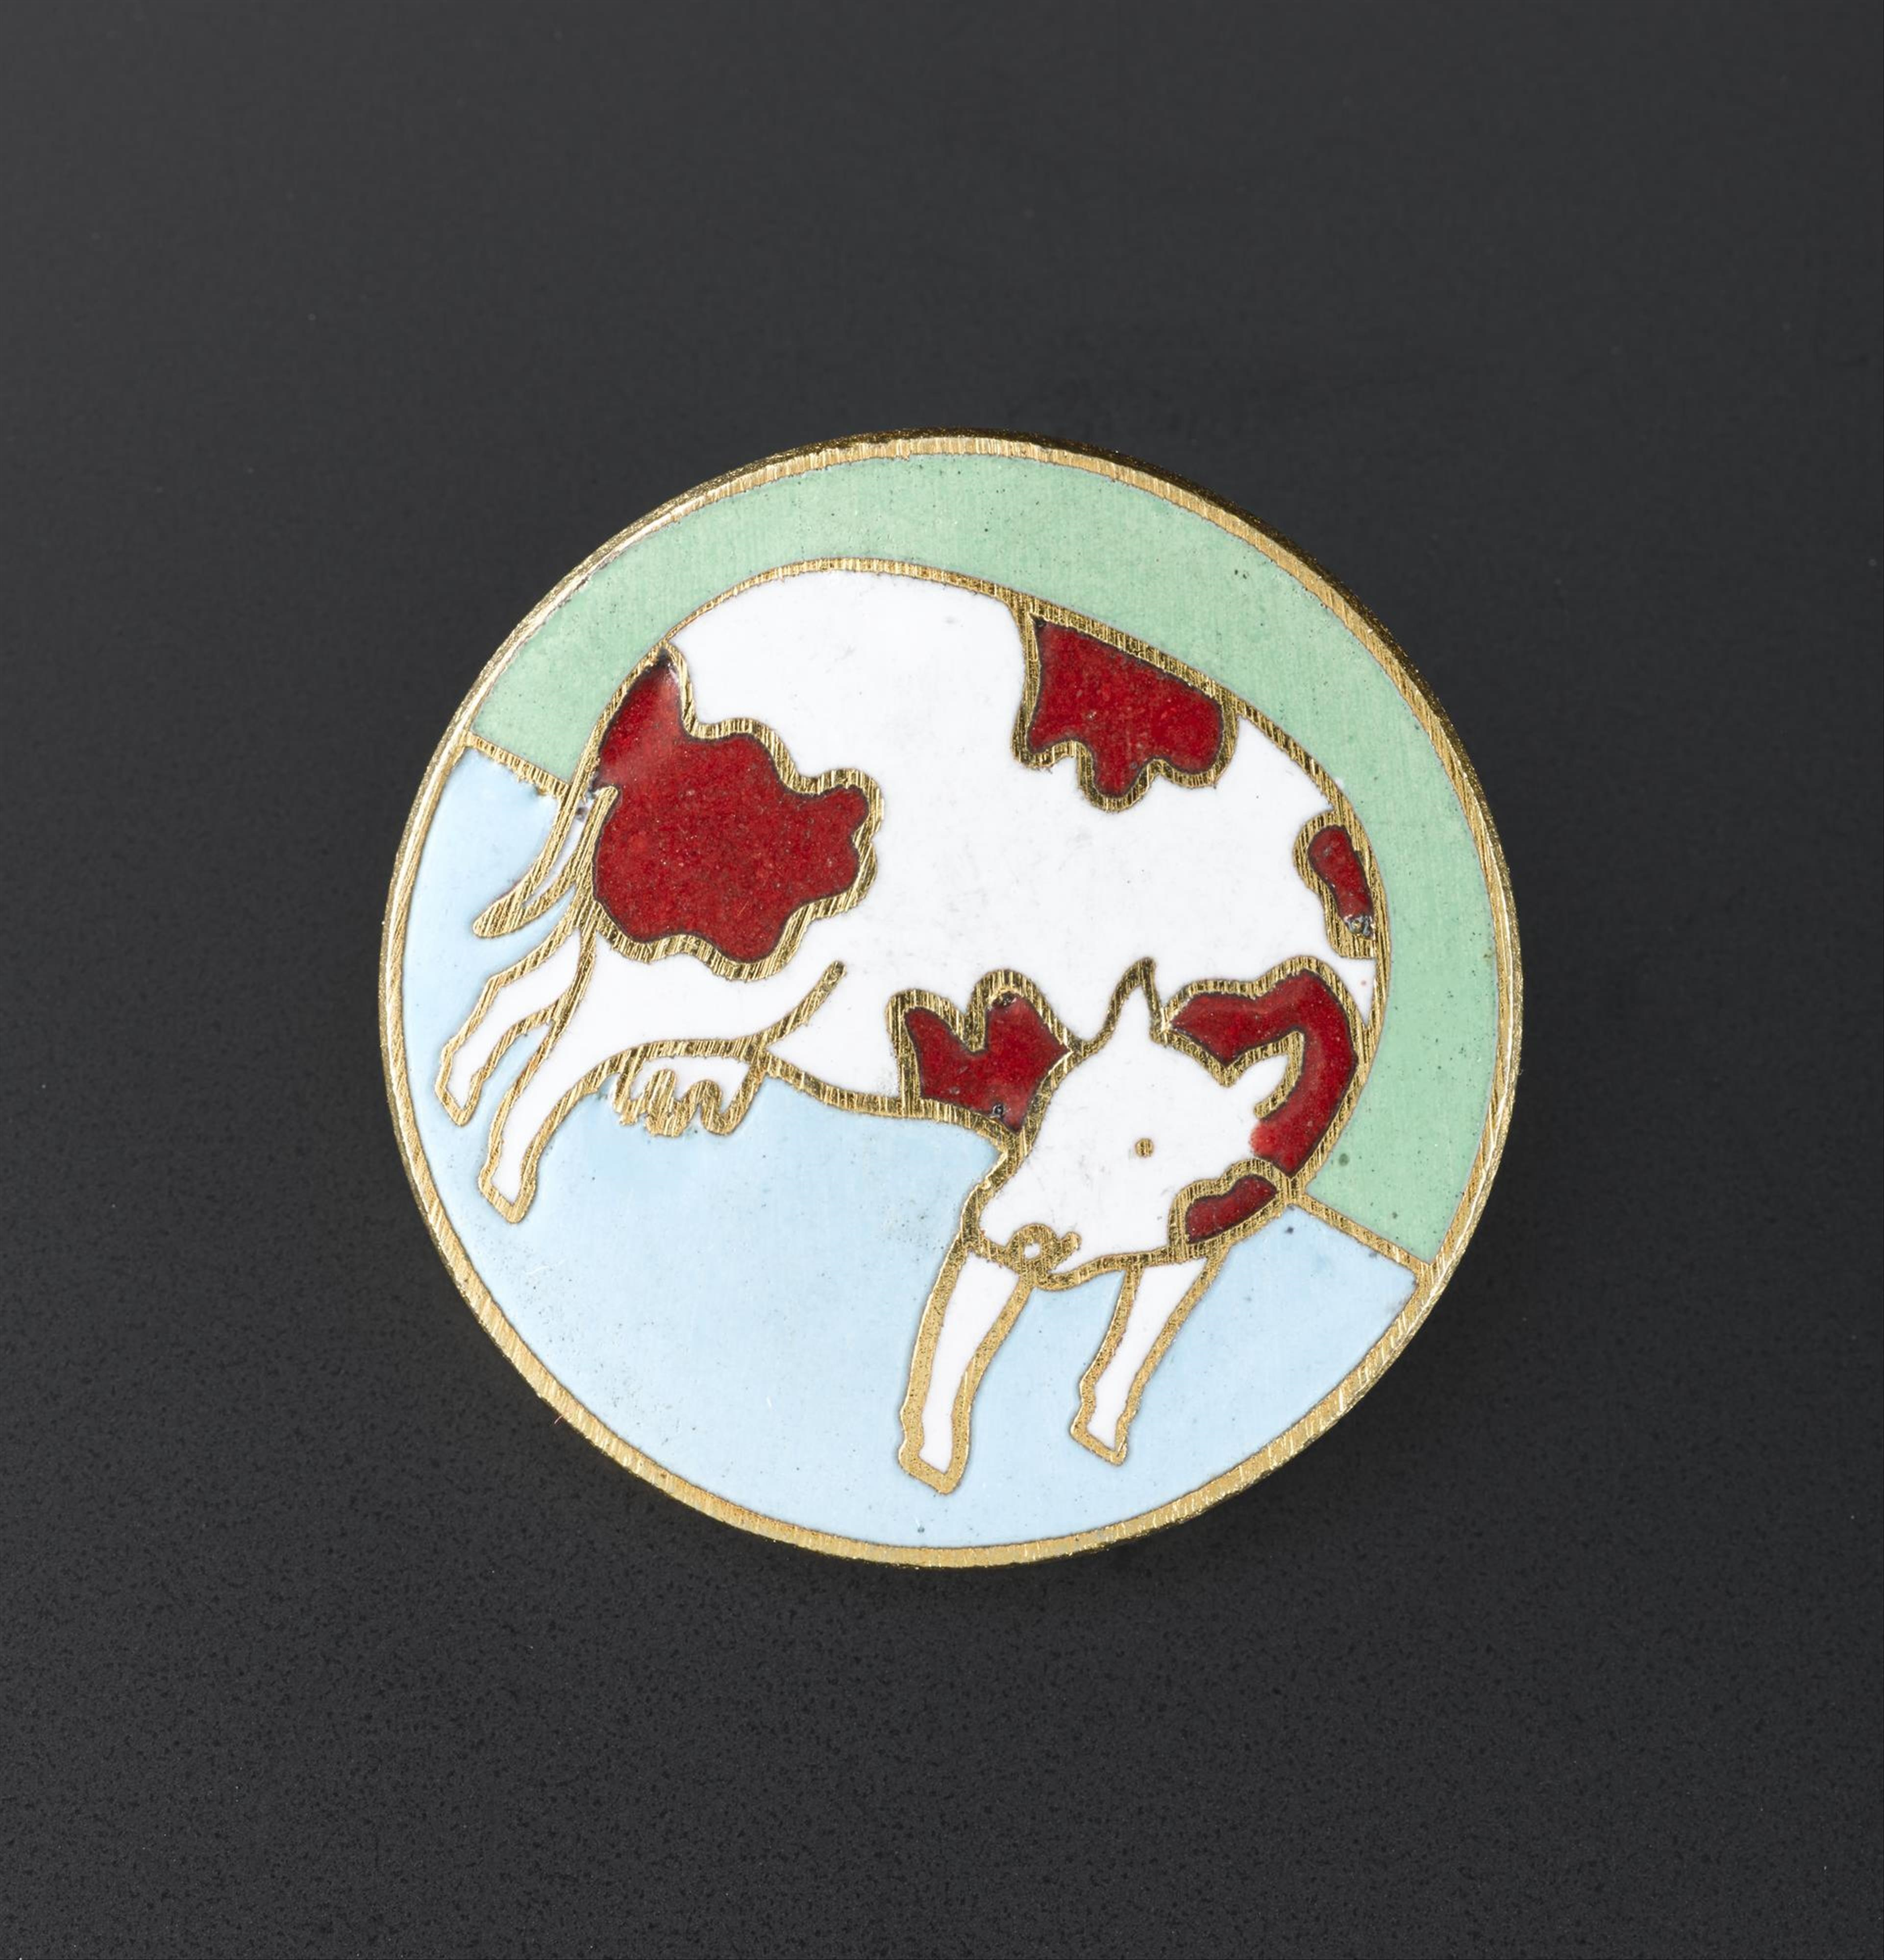 Button featuring a cow motif in enamel, possibly on silver gilt: British, by Marks of Distinction for Jean Muir Ltd, c.1972.